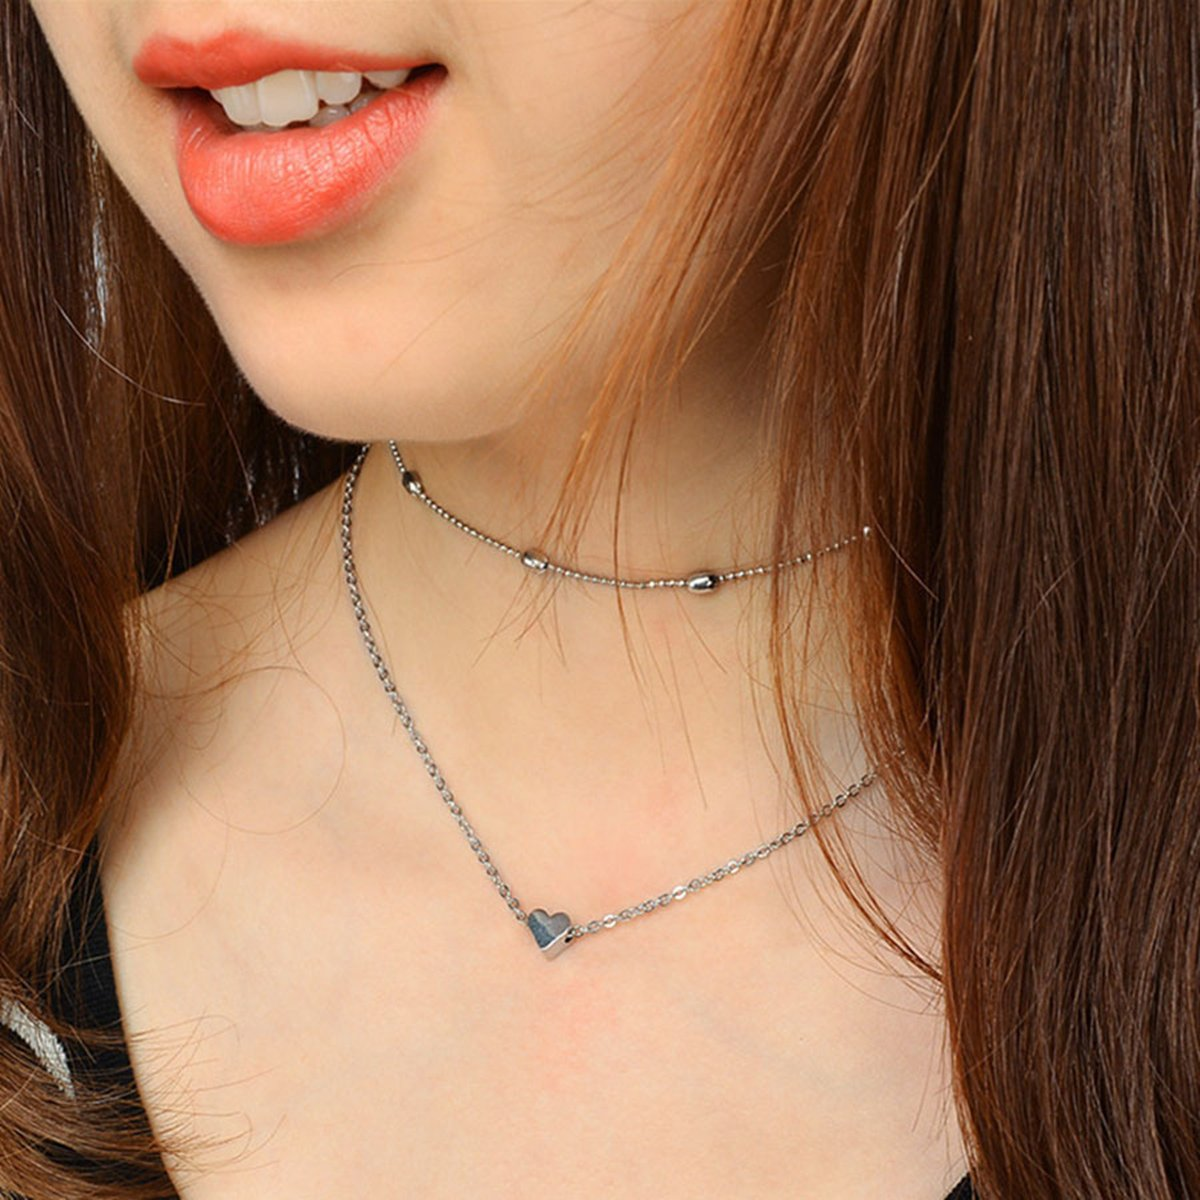 Anqifull Dainty Layered Gold Chocker Handmade Beads Fill Heart White Opal Necklace for Women Girls 012 by Anqifull (Image #7)